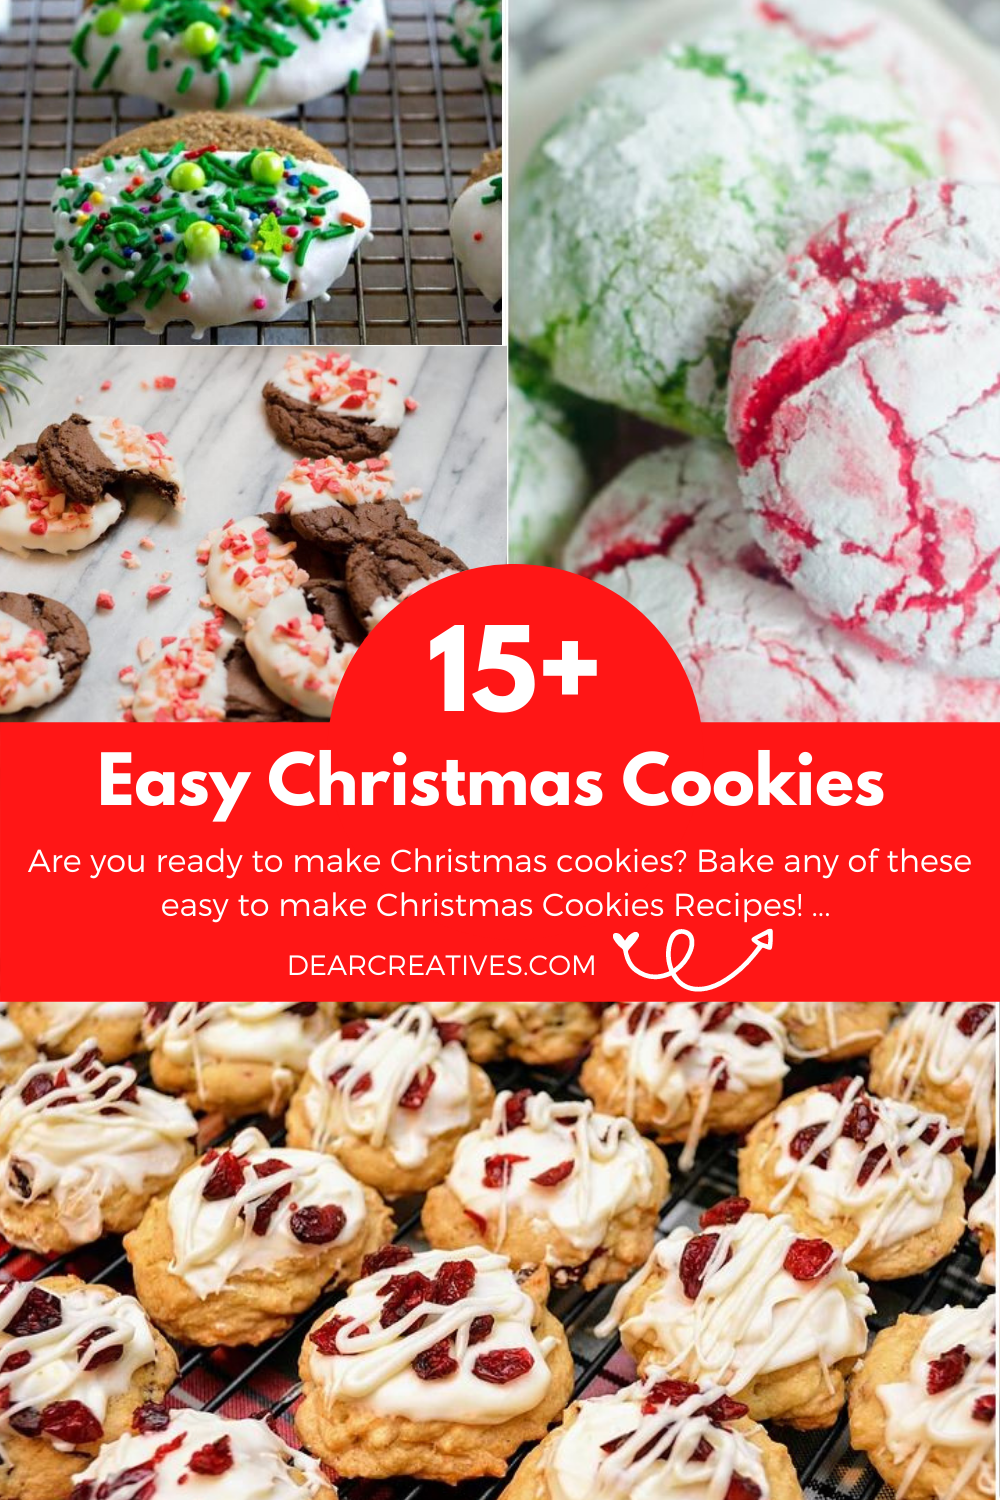 Easy Christmas Cookies – 15+ Recipes To Bake!